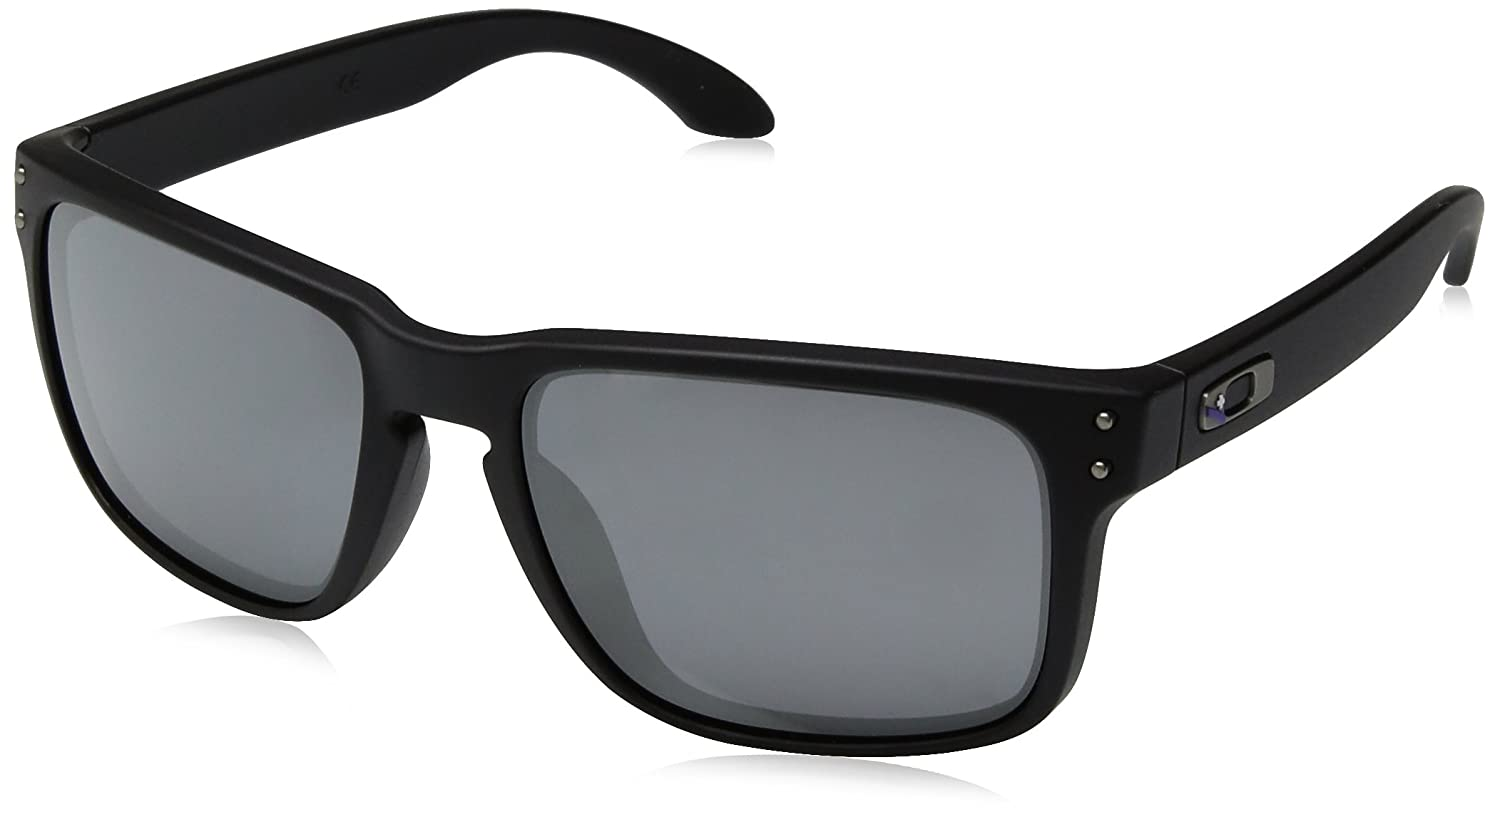 9d3c12dc5b5 Amazon.com  Oakley Holbrook Sunglasses  Clothing